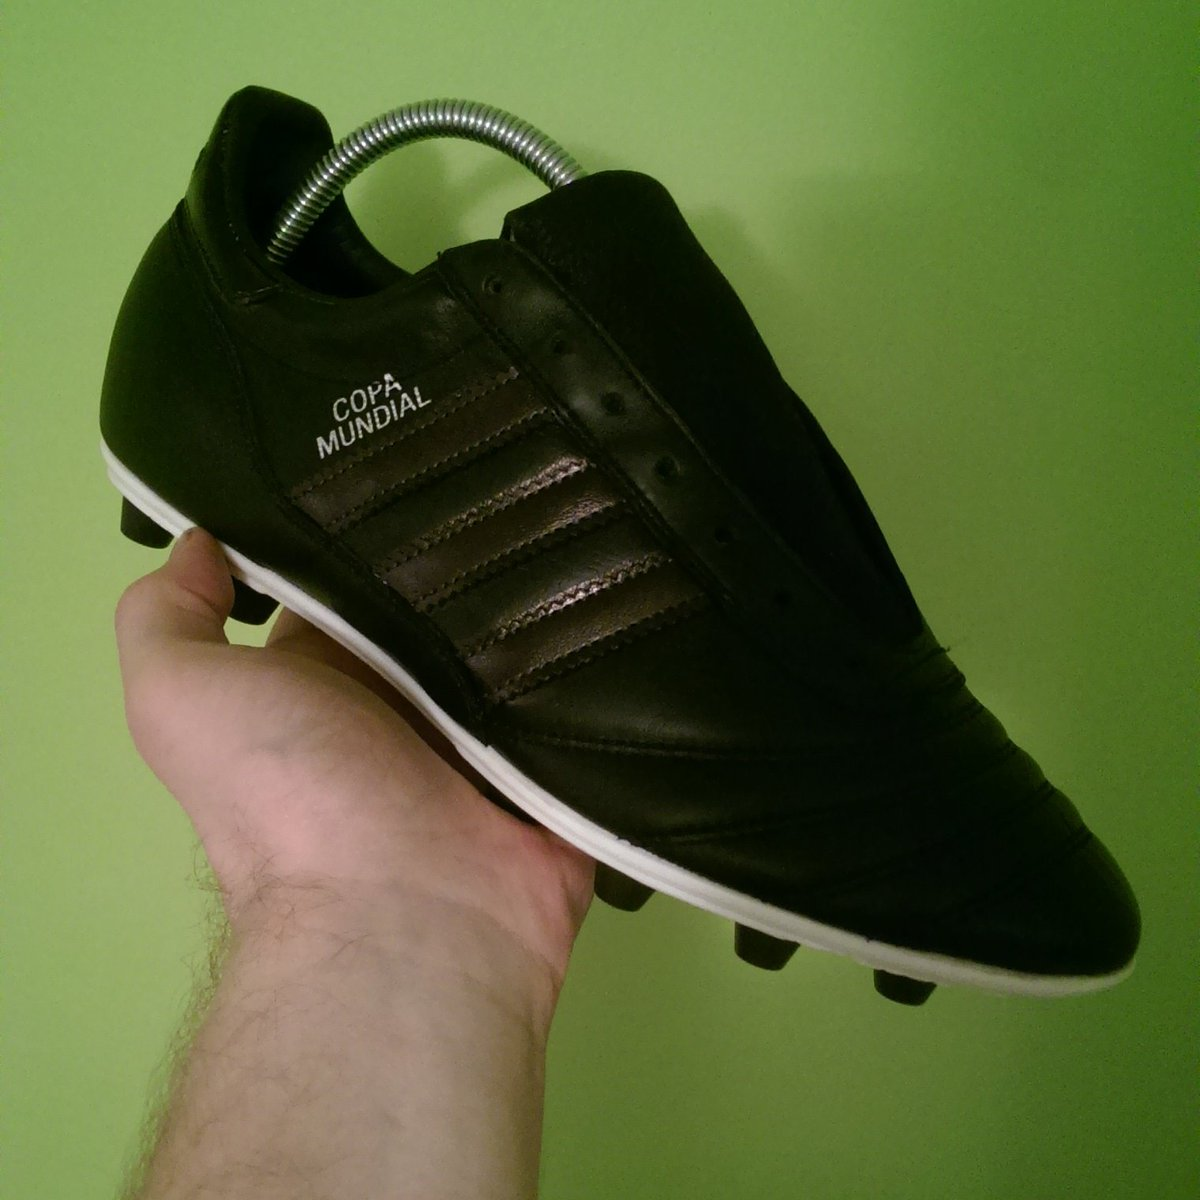 892848f83d480e authentic adidas copa mundial boost by the shoe surgeon 77466 93c13   australia perfect 4g boots for sale adidasfootball copa mundial 115 adidas  copamundial ...